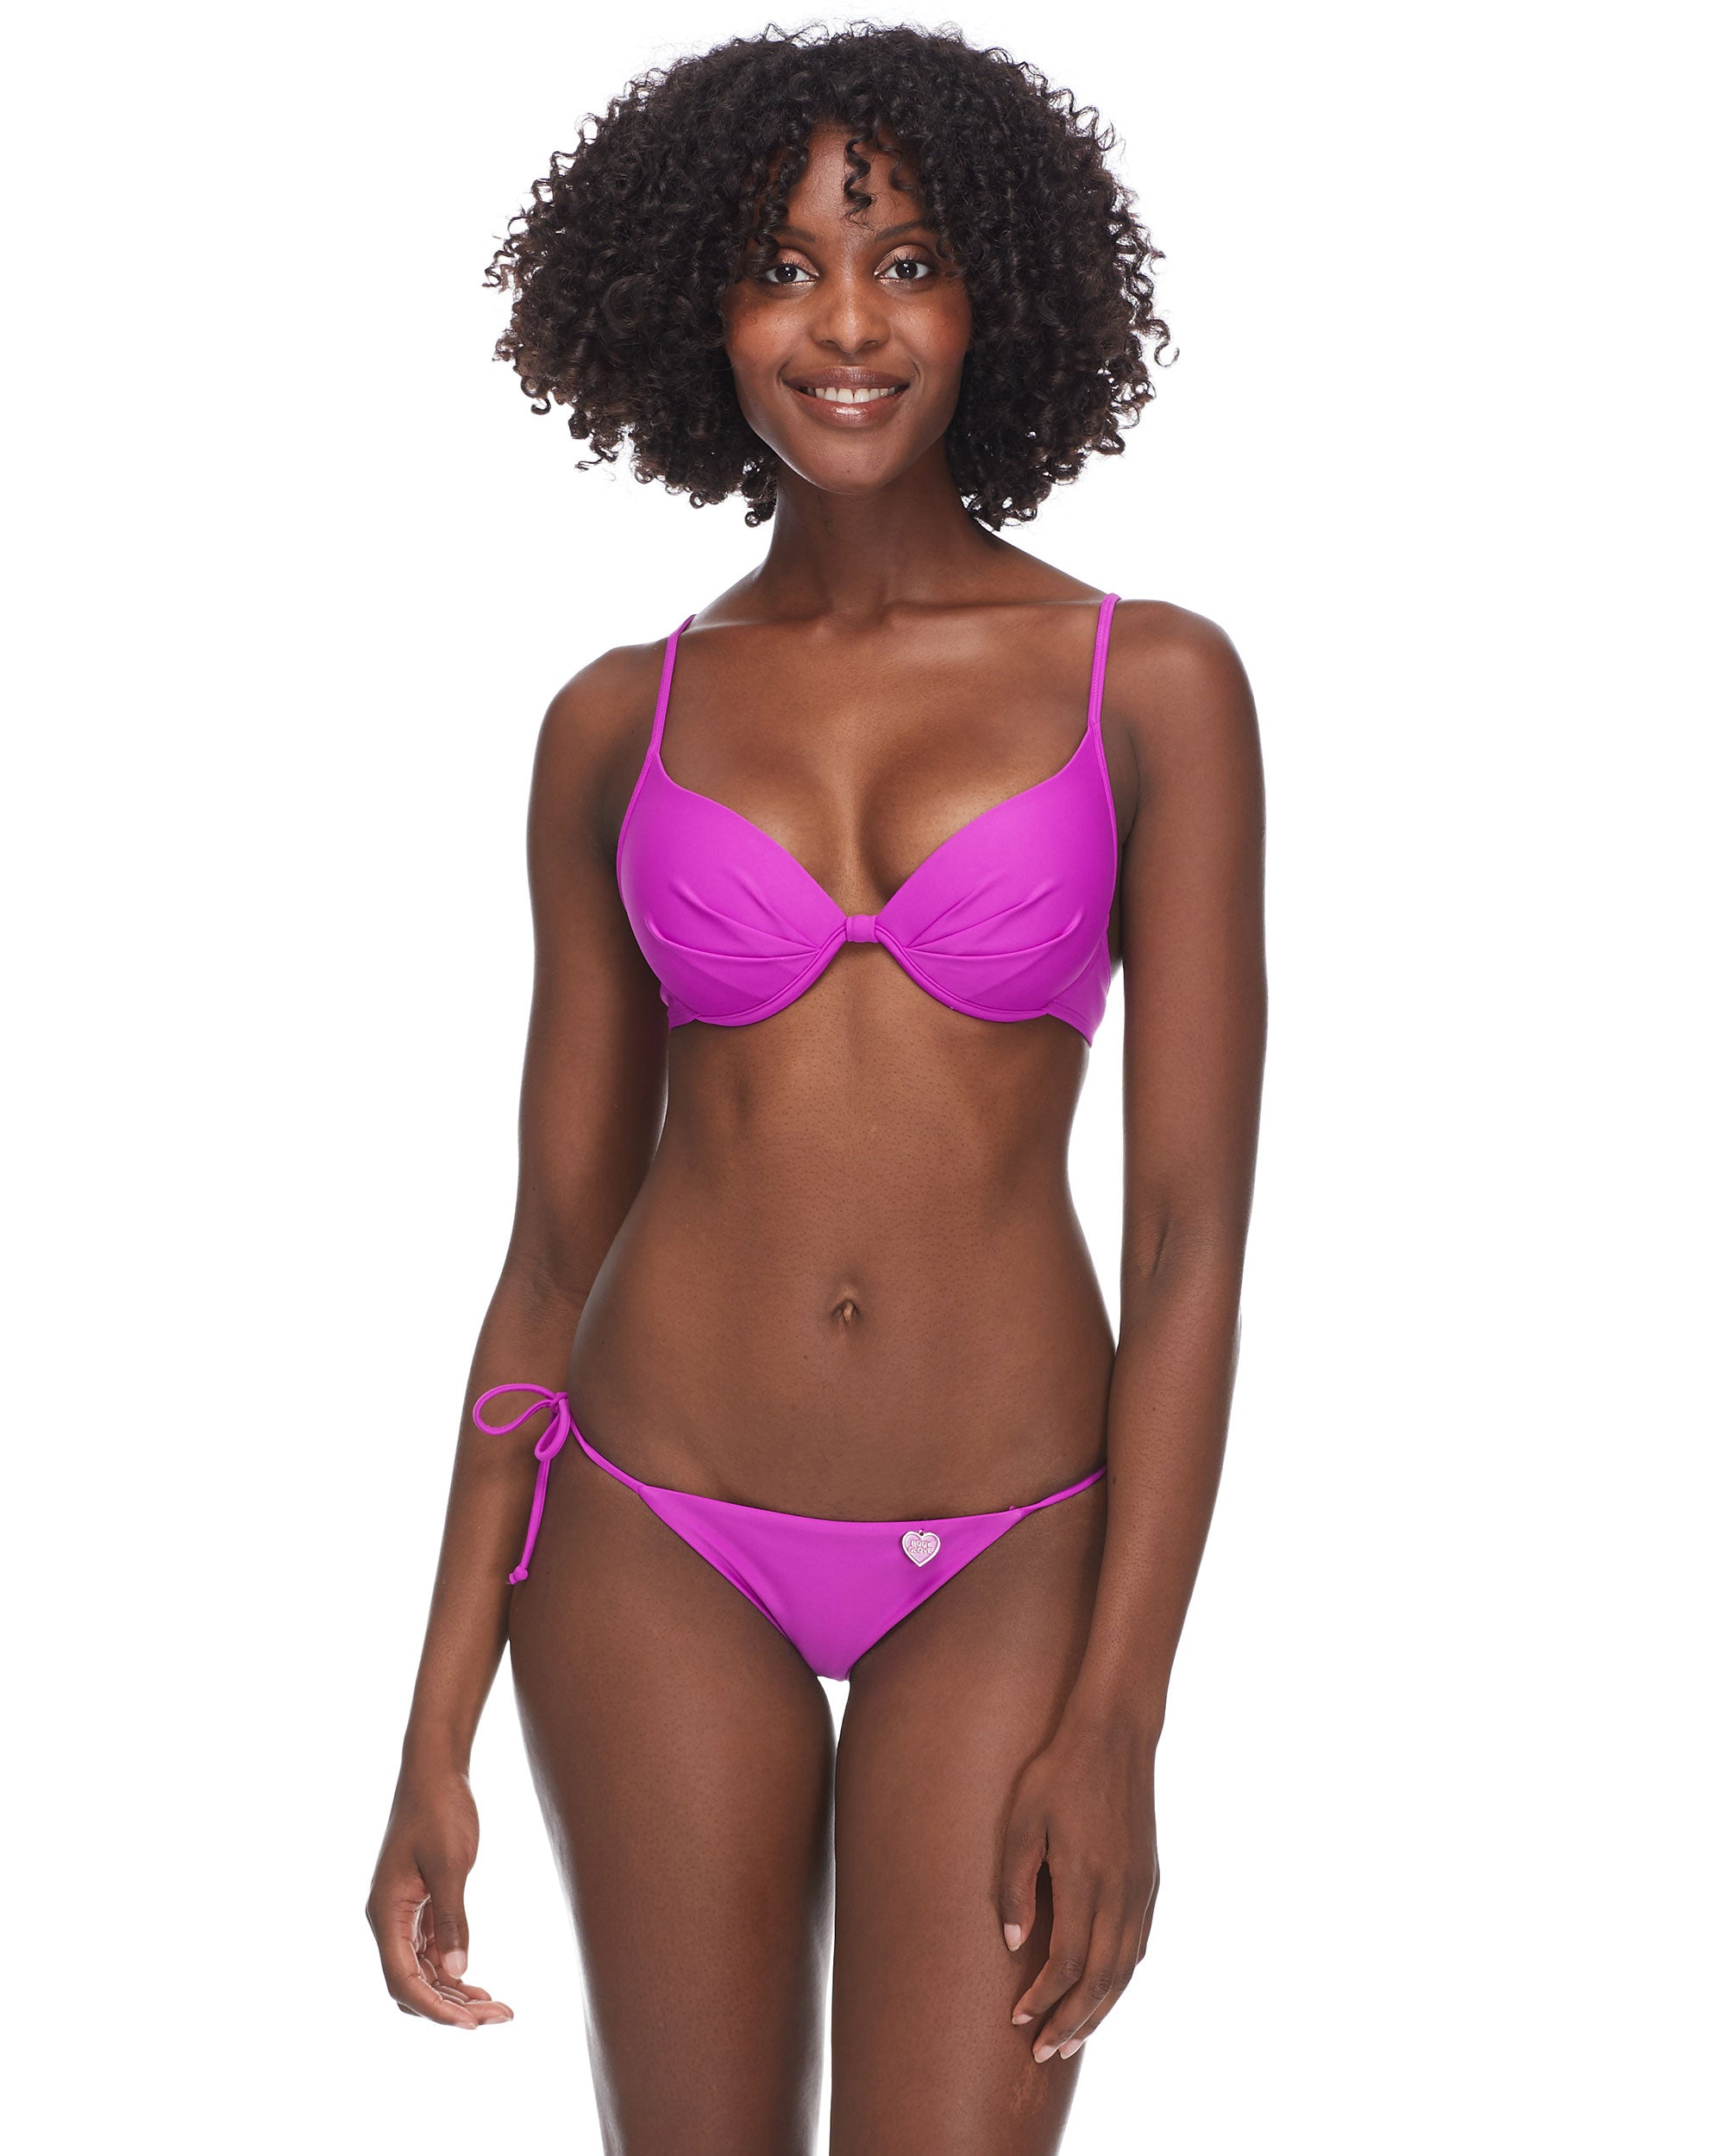 Smoothies Greta Swim Top - Magnolia